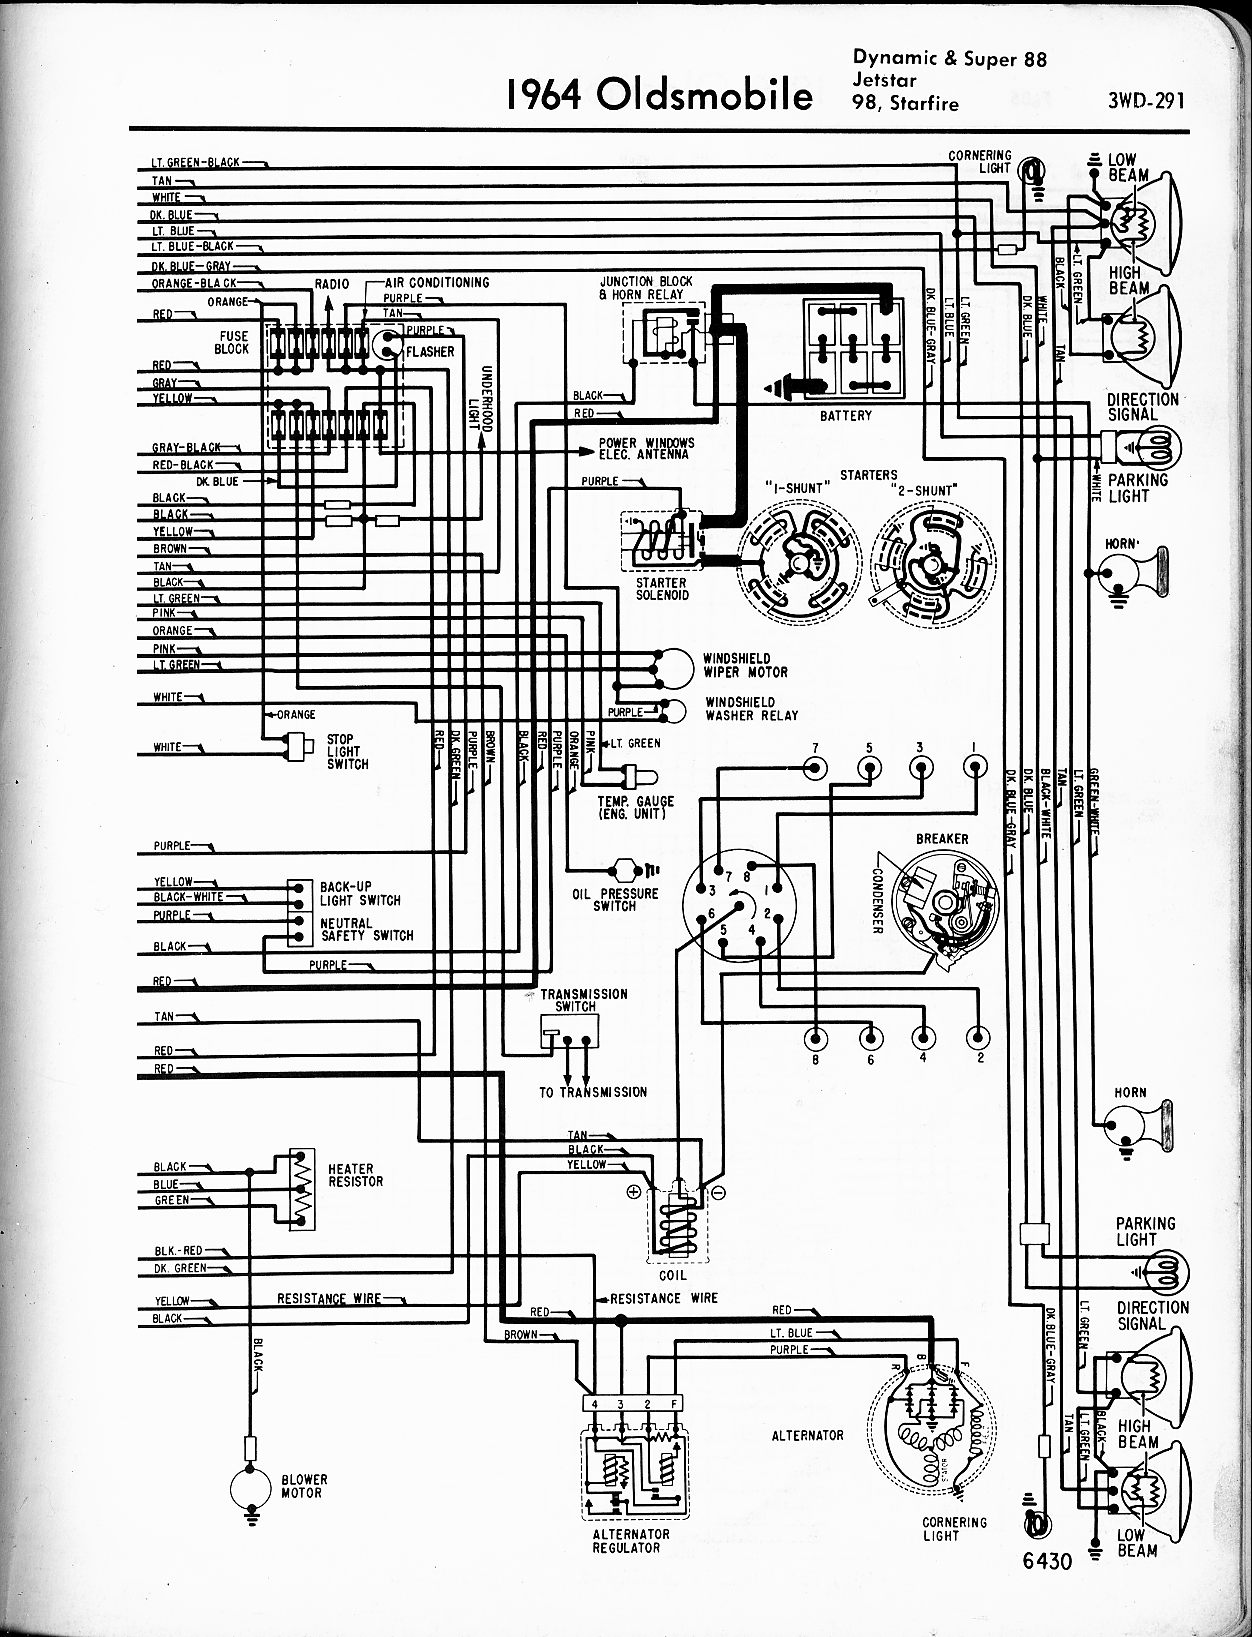 1974 oldsmobile wiring diagrams wiring center u2022 rh 45 63 64 79 1973 corvette wiring diagram 1973 ford truck wiring diagram